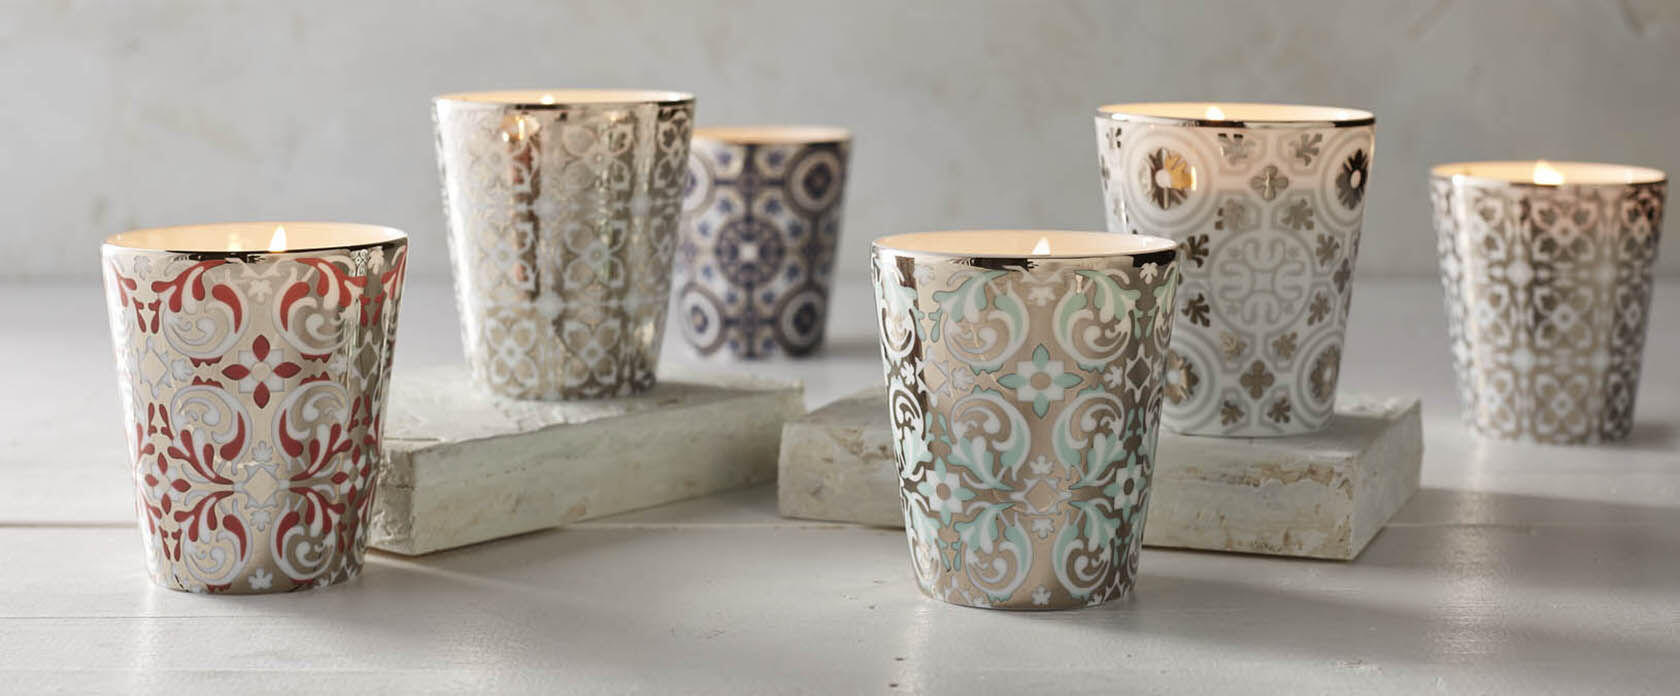 Rose et Marius Limoges Ceramic Candle Collection